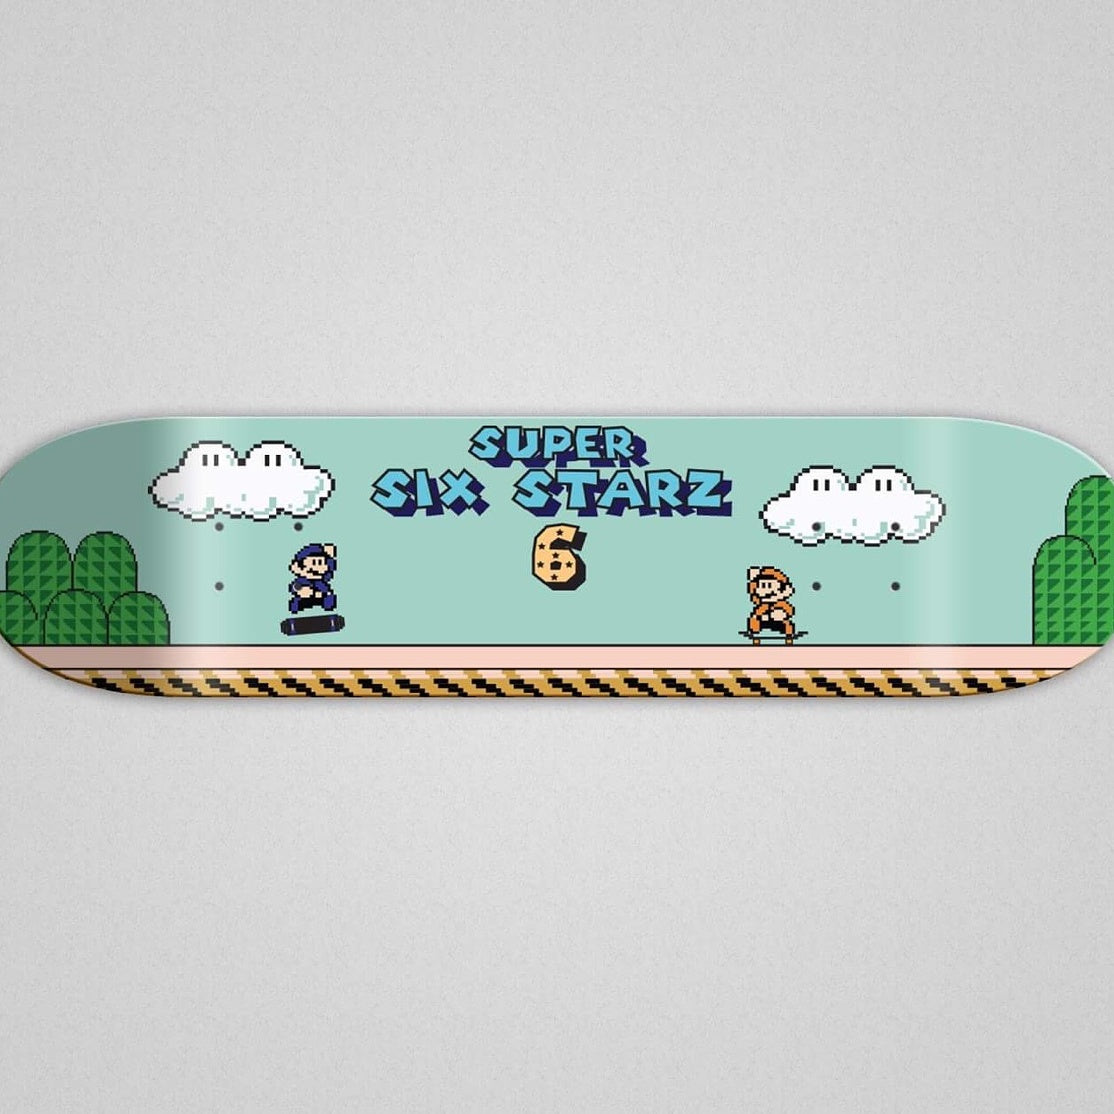 Super Six Starz Skateboard